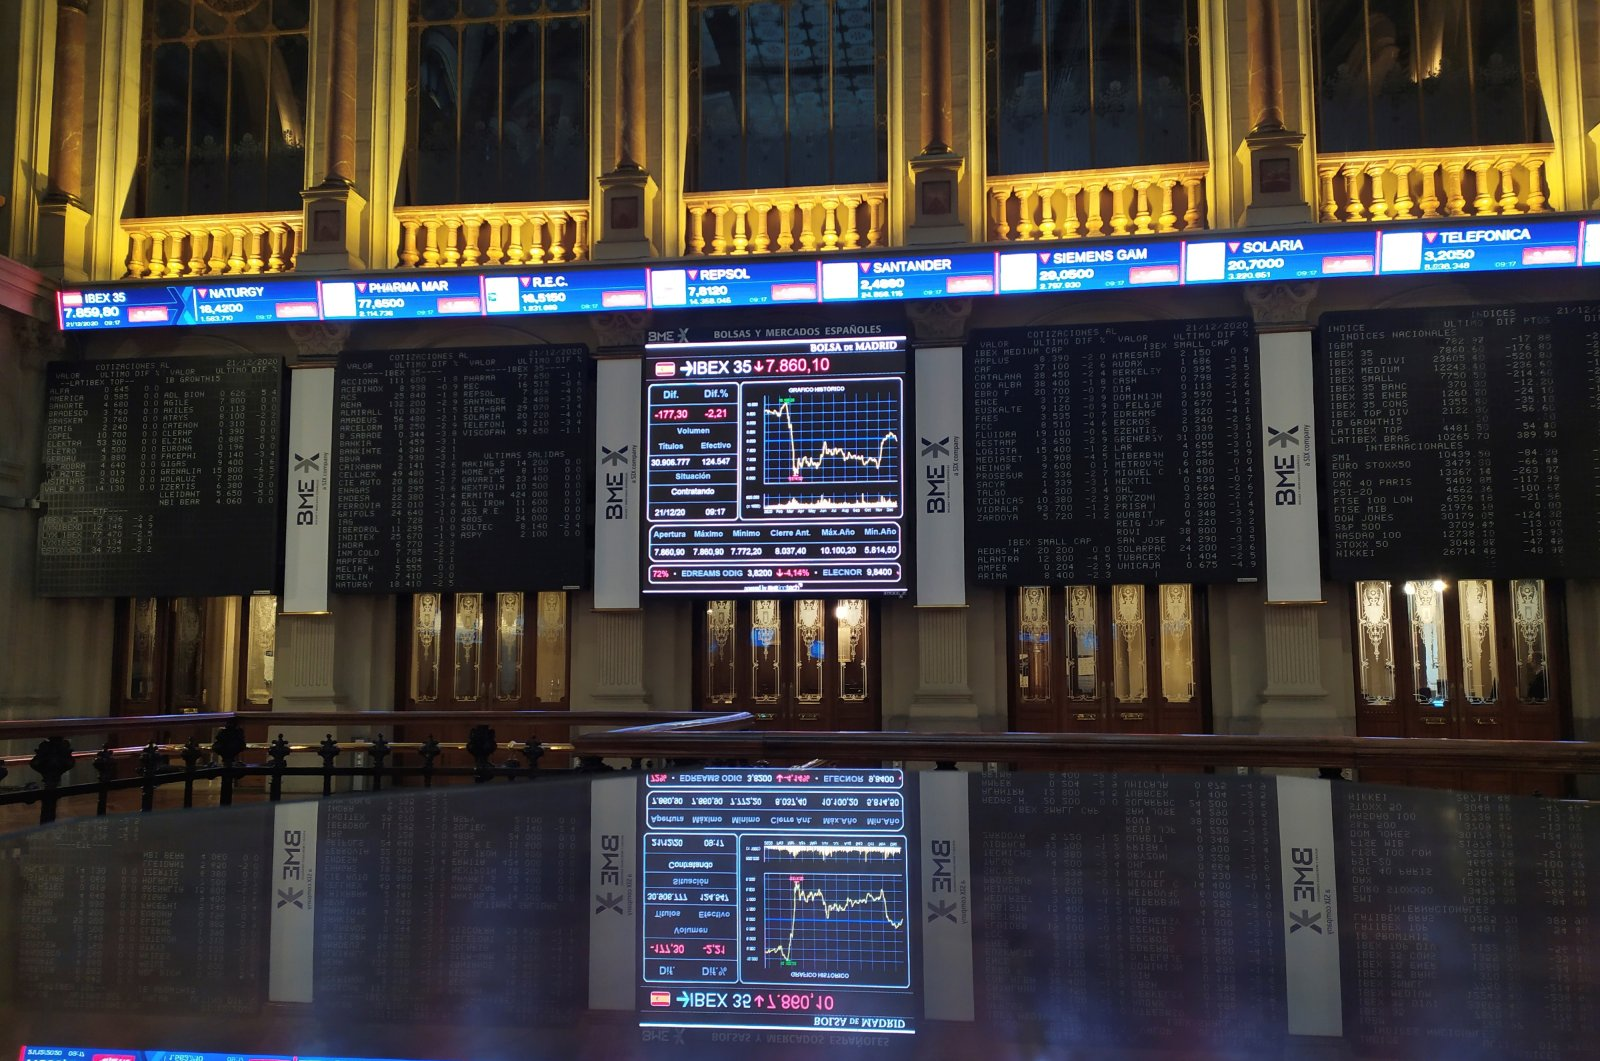 Screens display the evolution of the Spanish stock index IBEX 35 at the Madrid Stock Exchange, in Madrid, Spain, Dec. 21 2020. (EPA Photo)